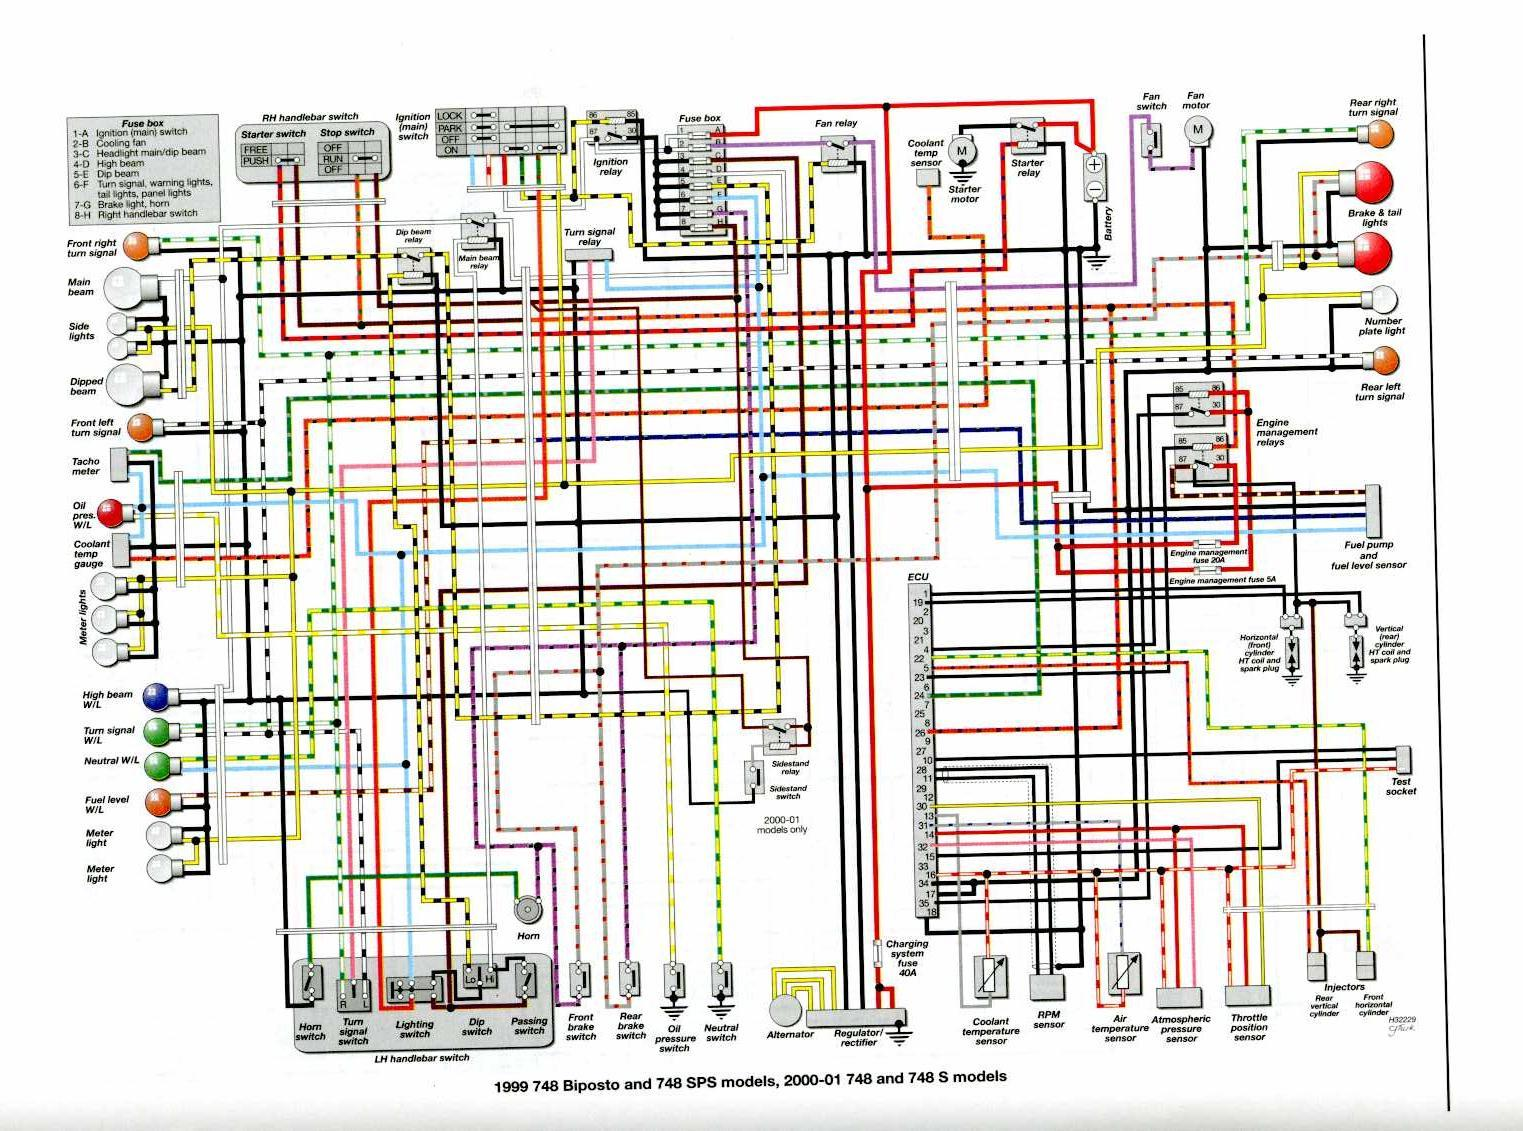 Can you email/fax/link me a Superbike wiring diagram? | Ducati.ms - The  Ultimate Ducati ForumDucati.ms